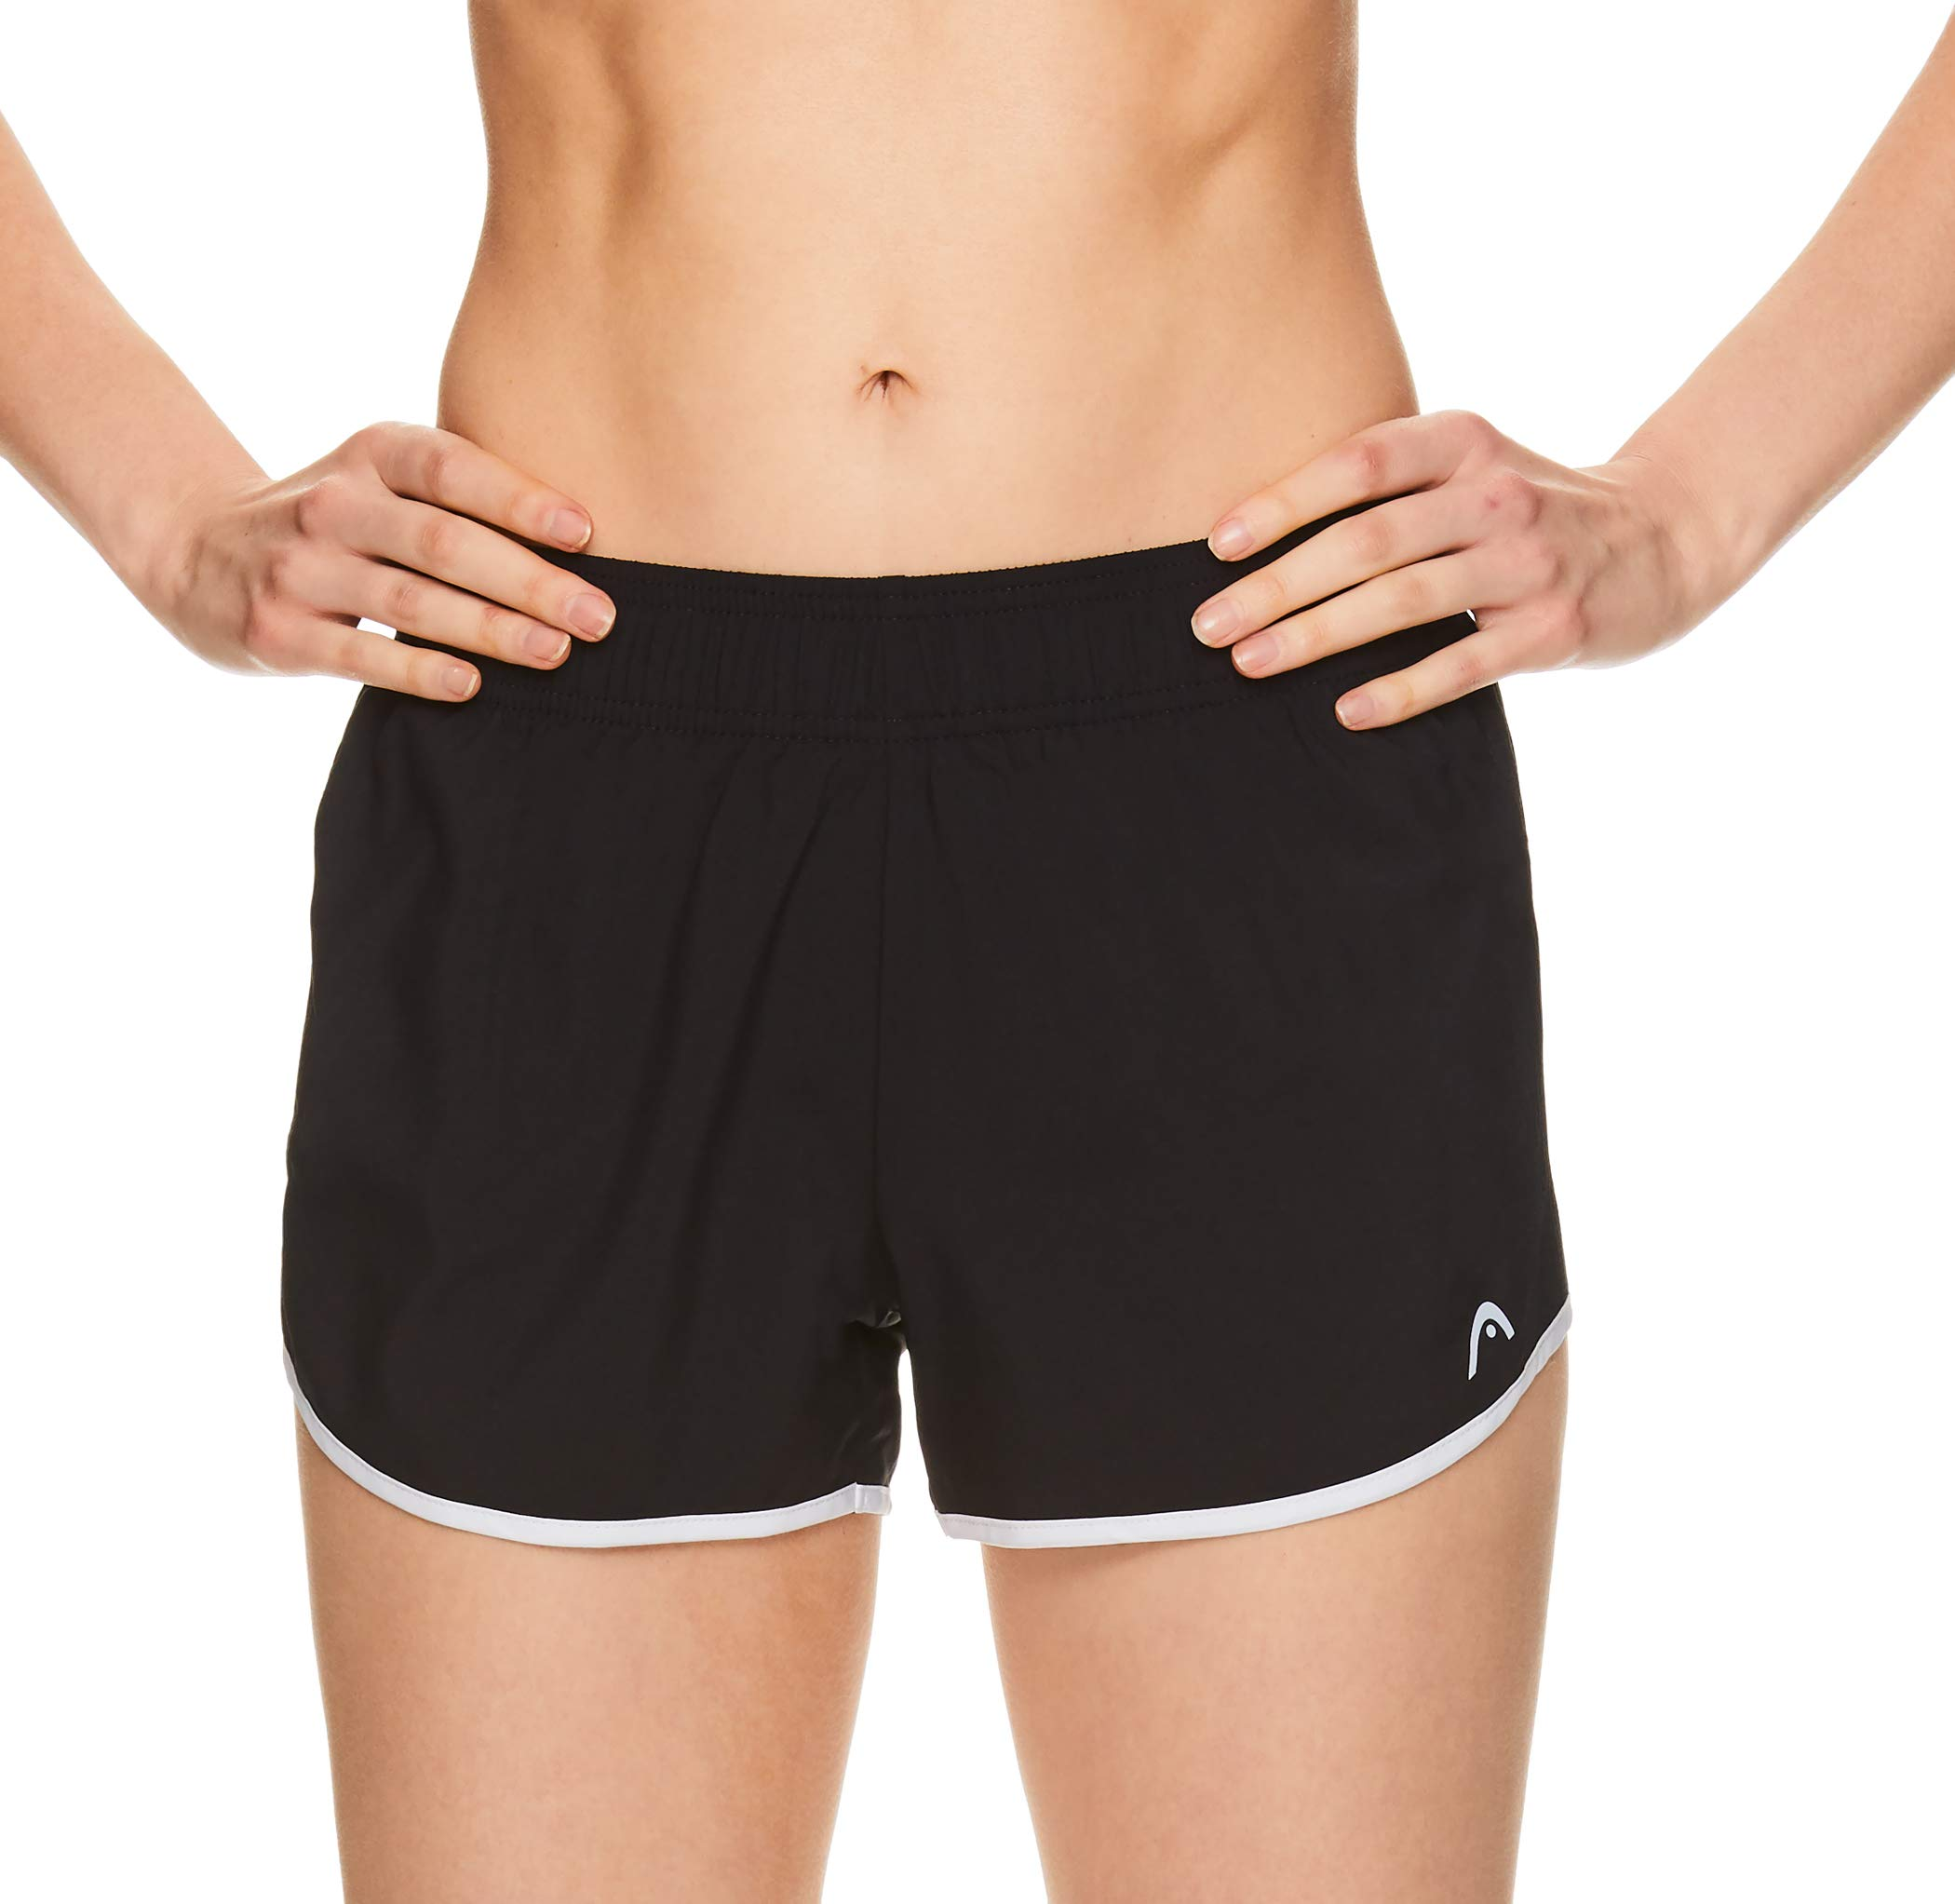 HEAD Women's Athletic Workout Shorts - Polyester Gym Training & Running Short - Ally Black, X-Small